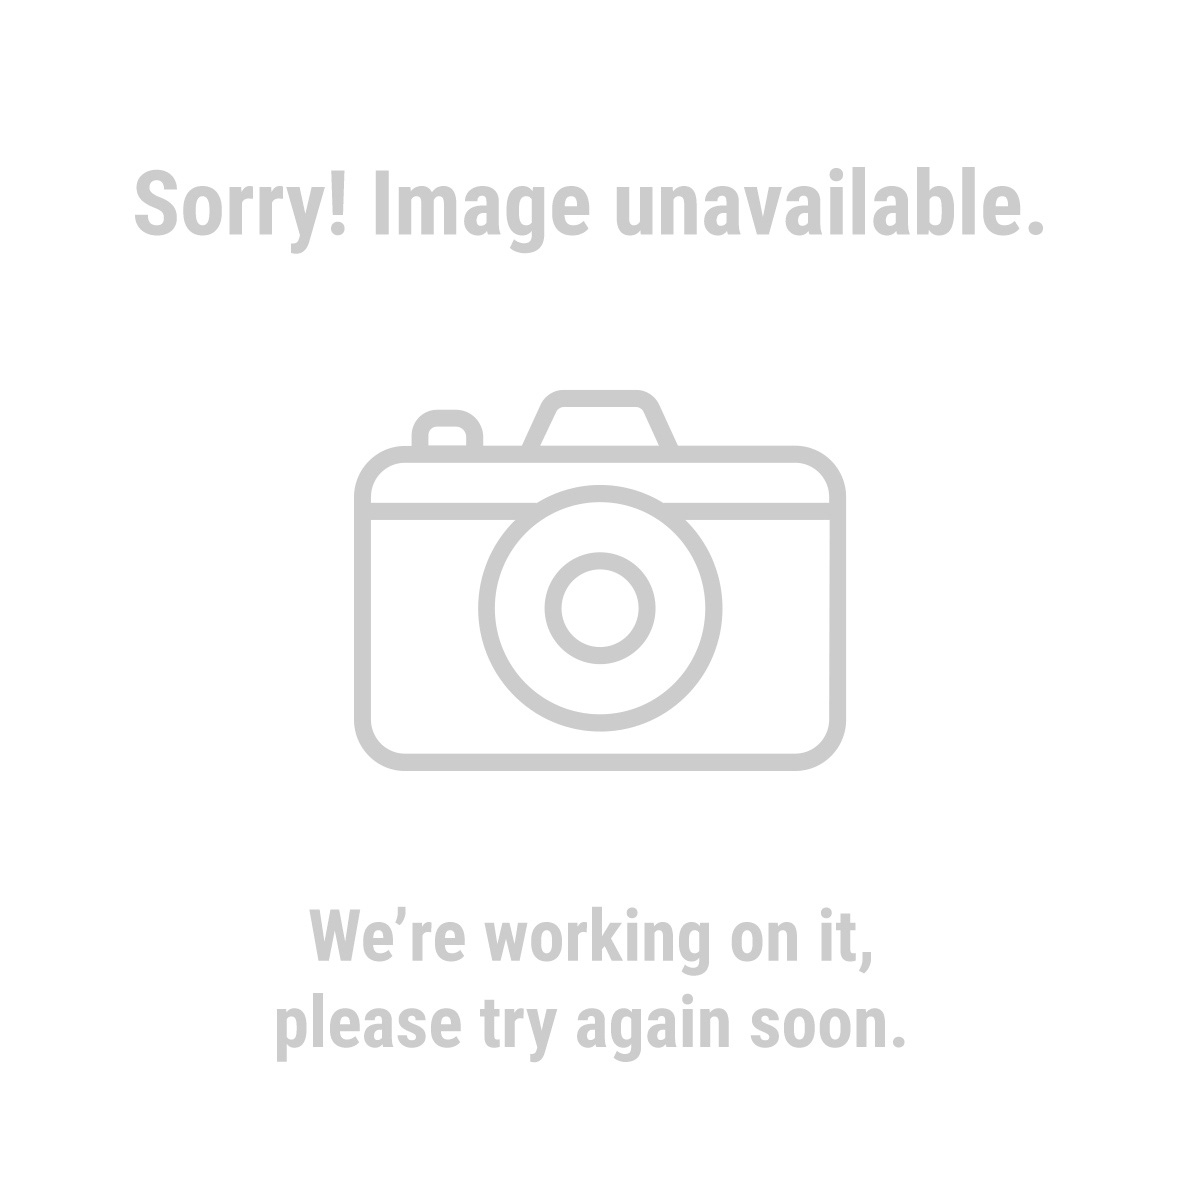 Pittsburgh® Automotive 60315 3 Ton Heavy Duty Long Ram Hydraulic Jack